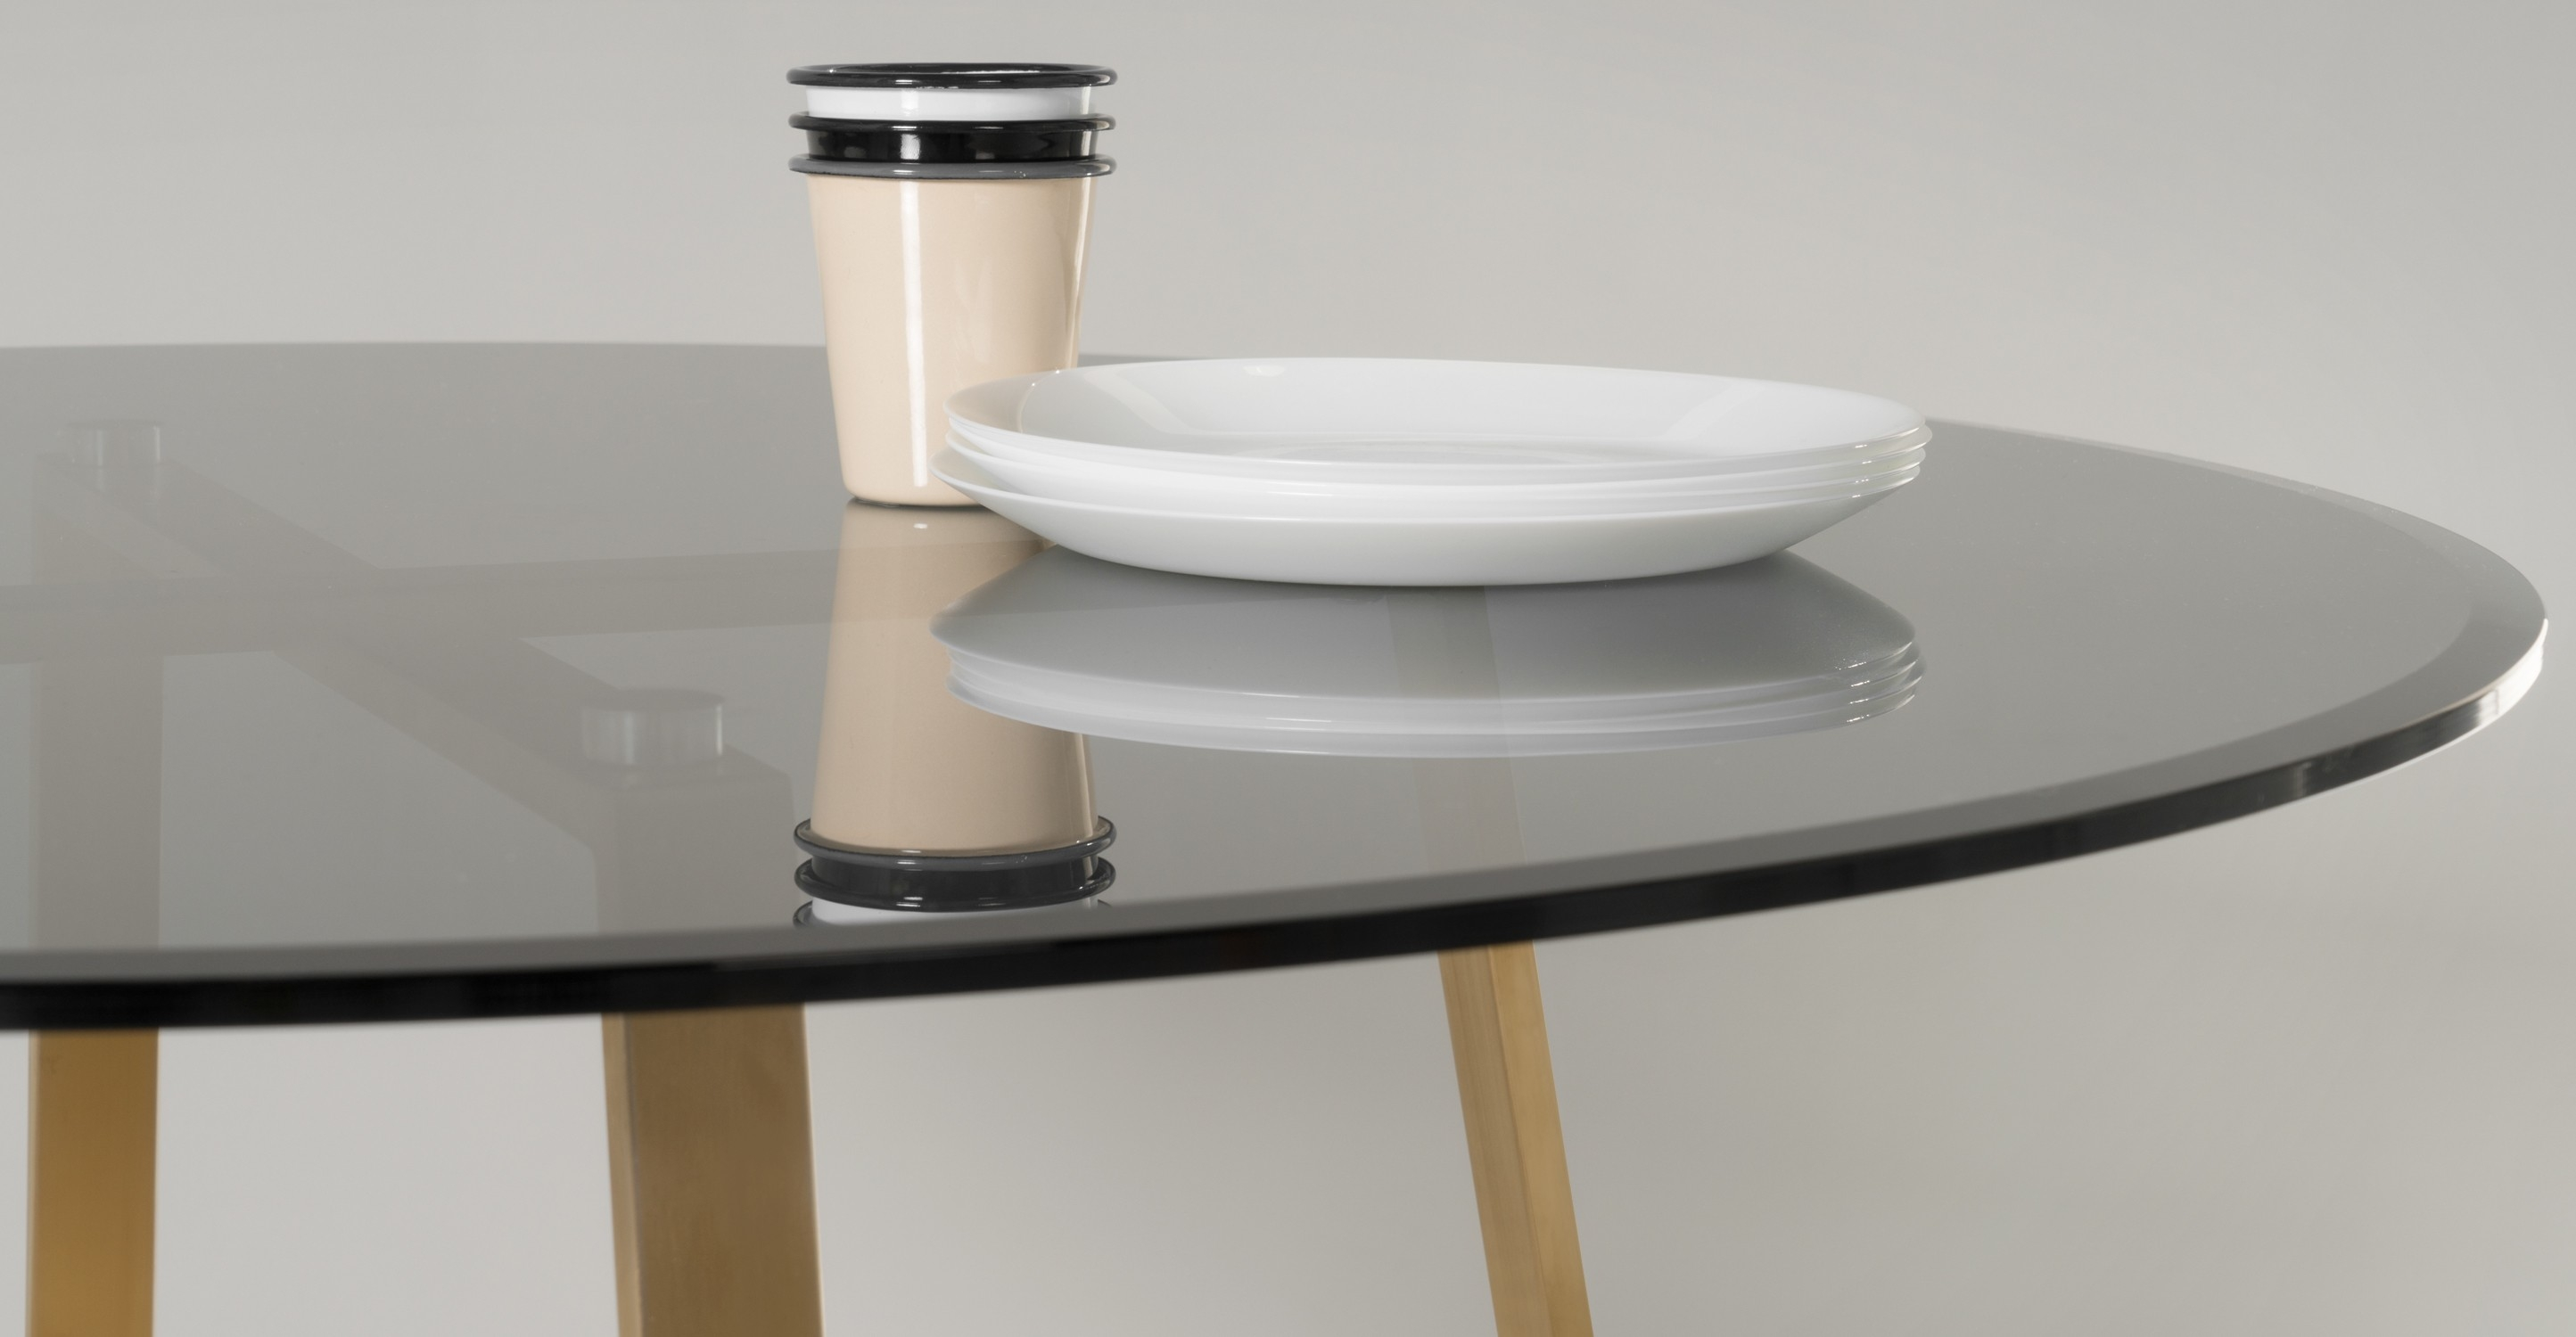 Haku Round Large Dining Table Brass And Smoked Glass Made Inside Smoked Glass Shelf (View 9 of 12)